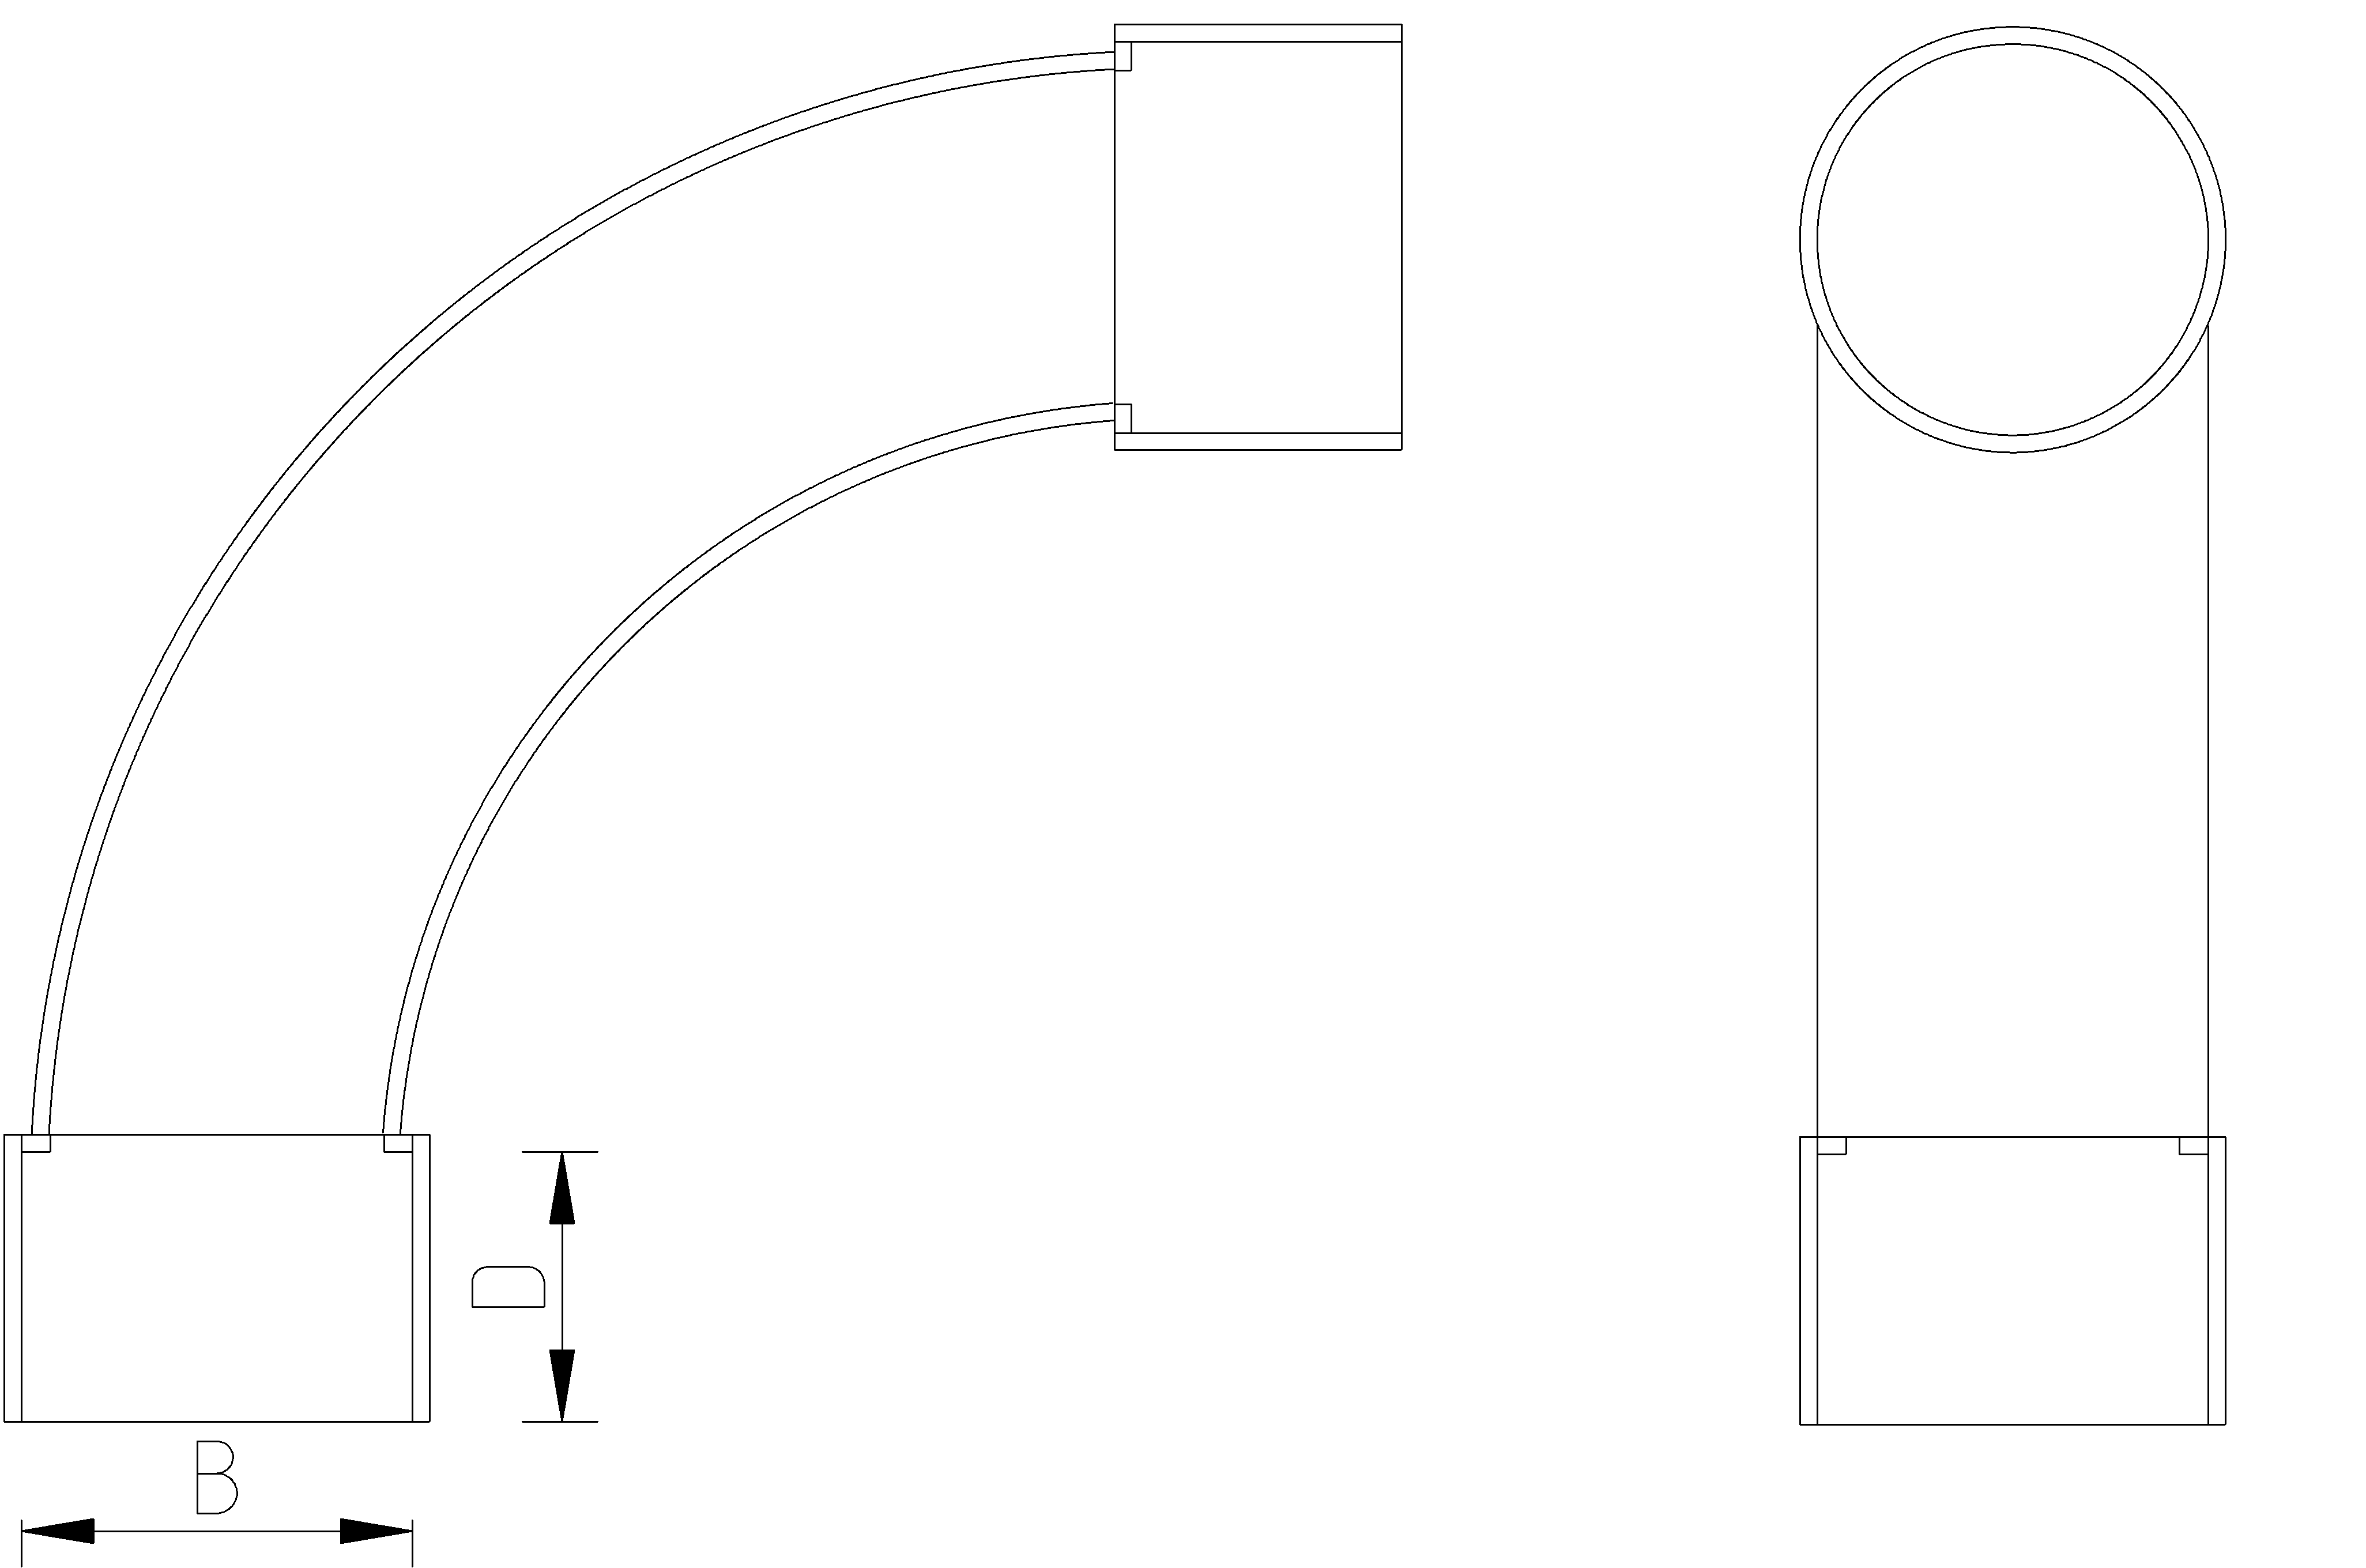 40mm 90 Bend Dimensions Drawing